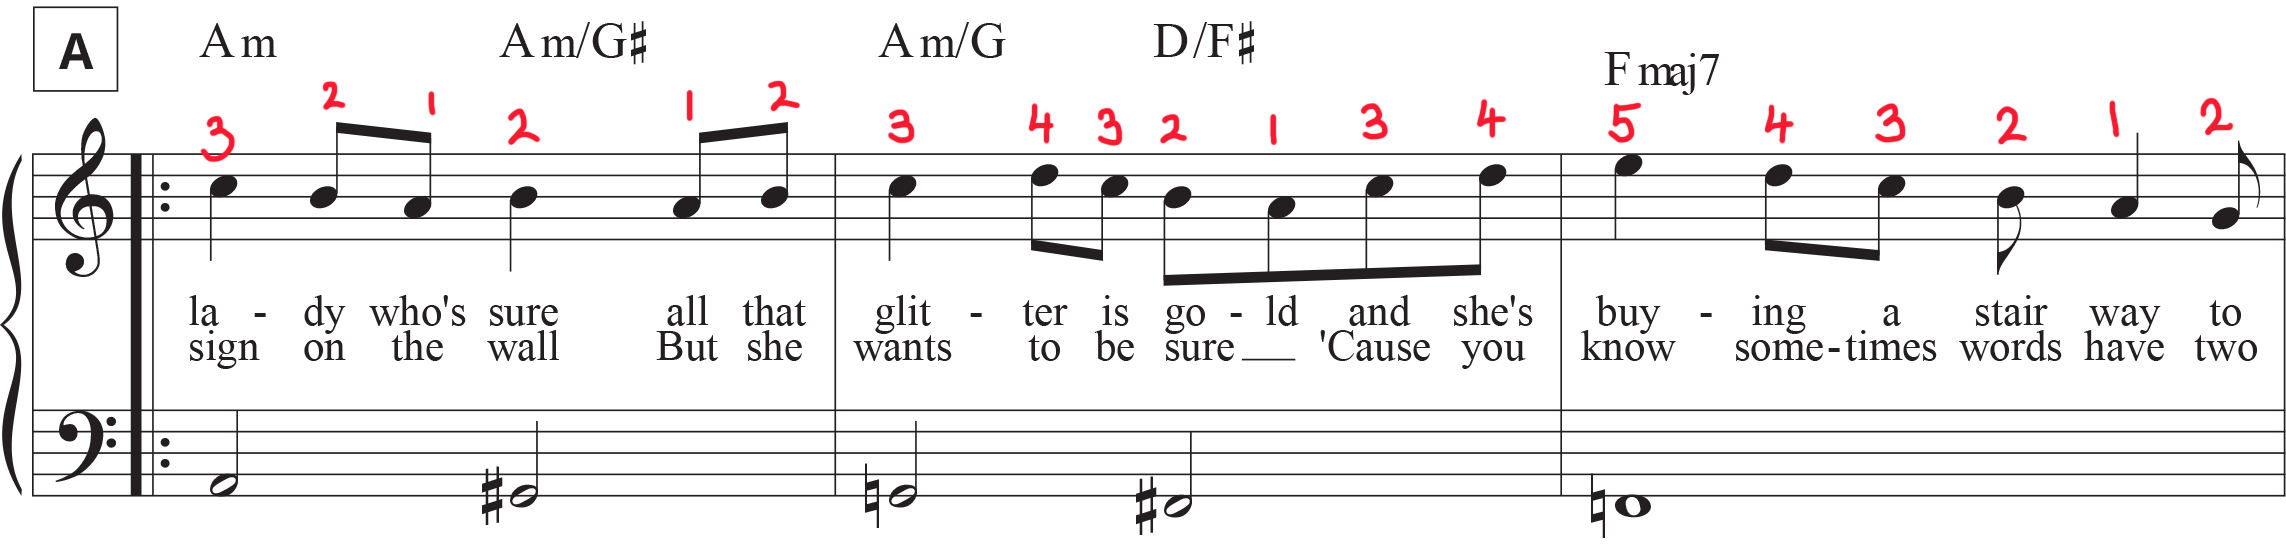 """""""Stairway to Heaven"""" sheet music mark-up of Section A with fingering in right hand."""